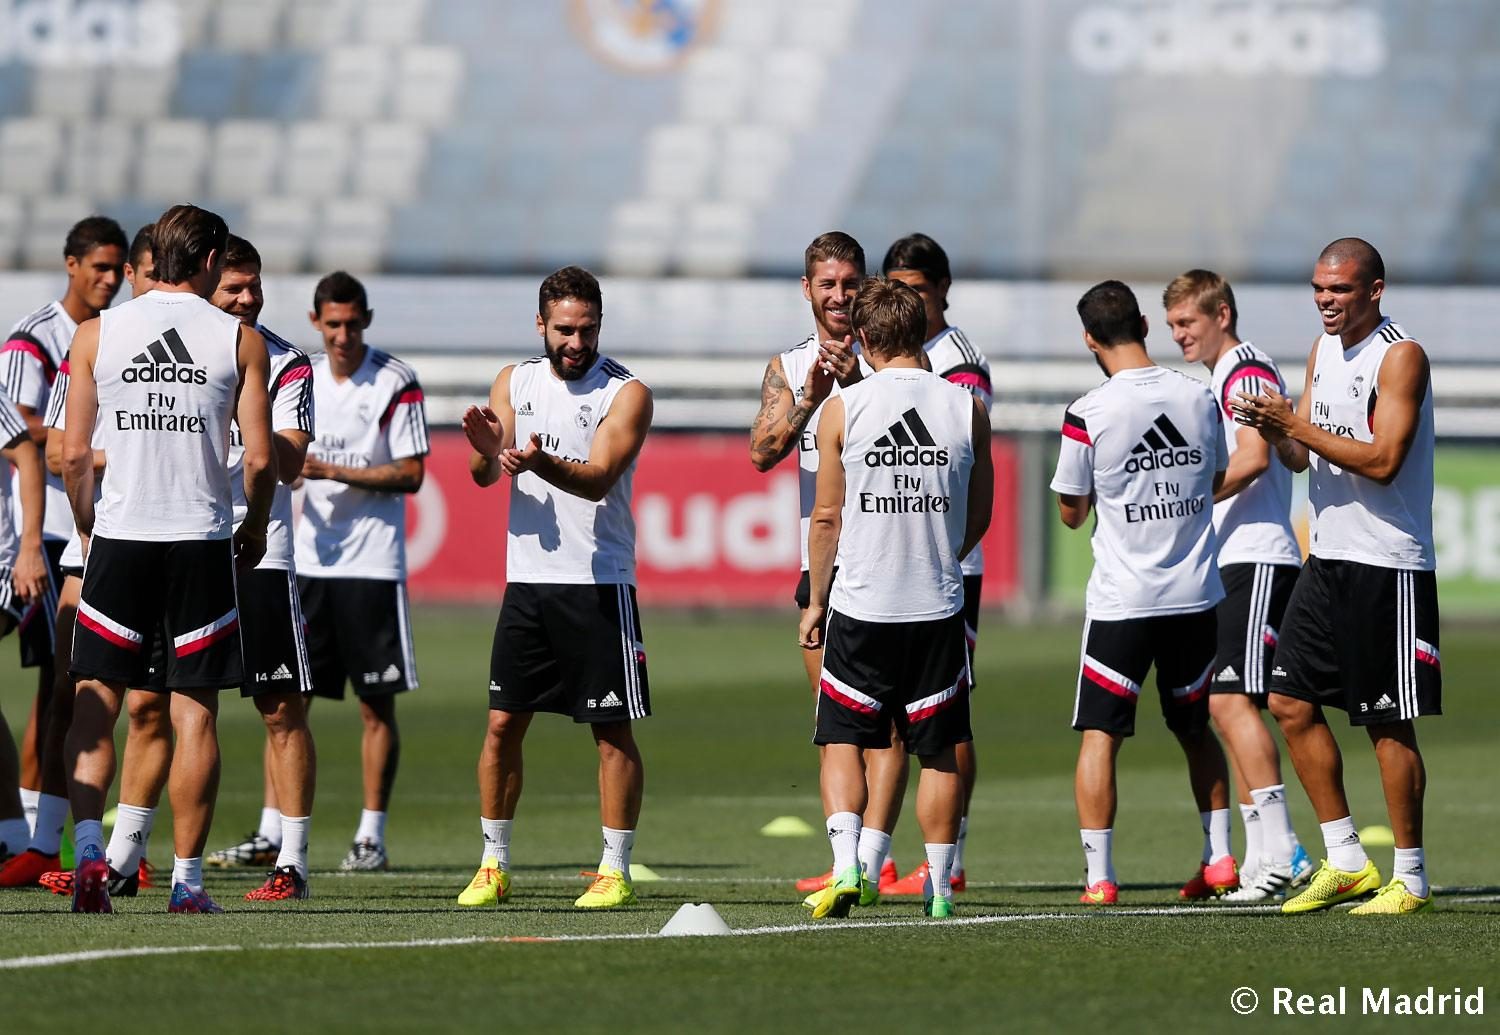 Real Madrid - Entrenamiento del Real Madrid - 21-08-2014